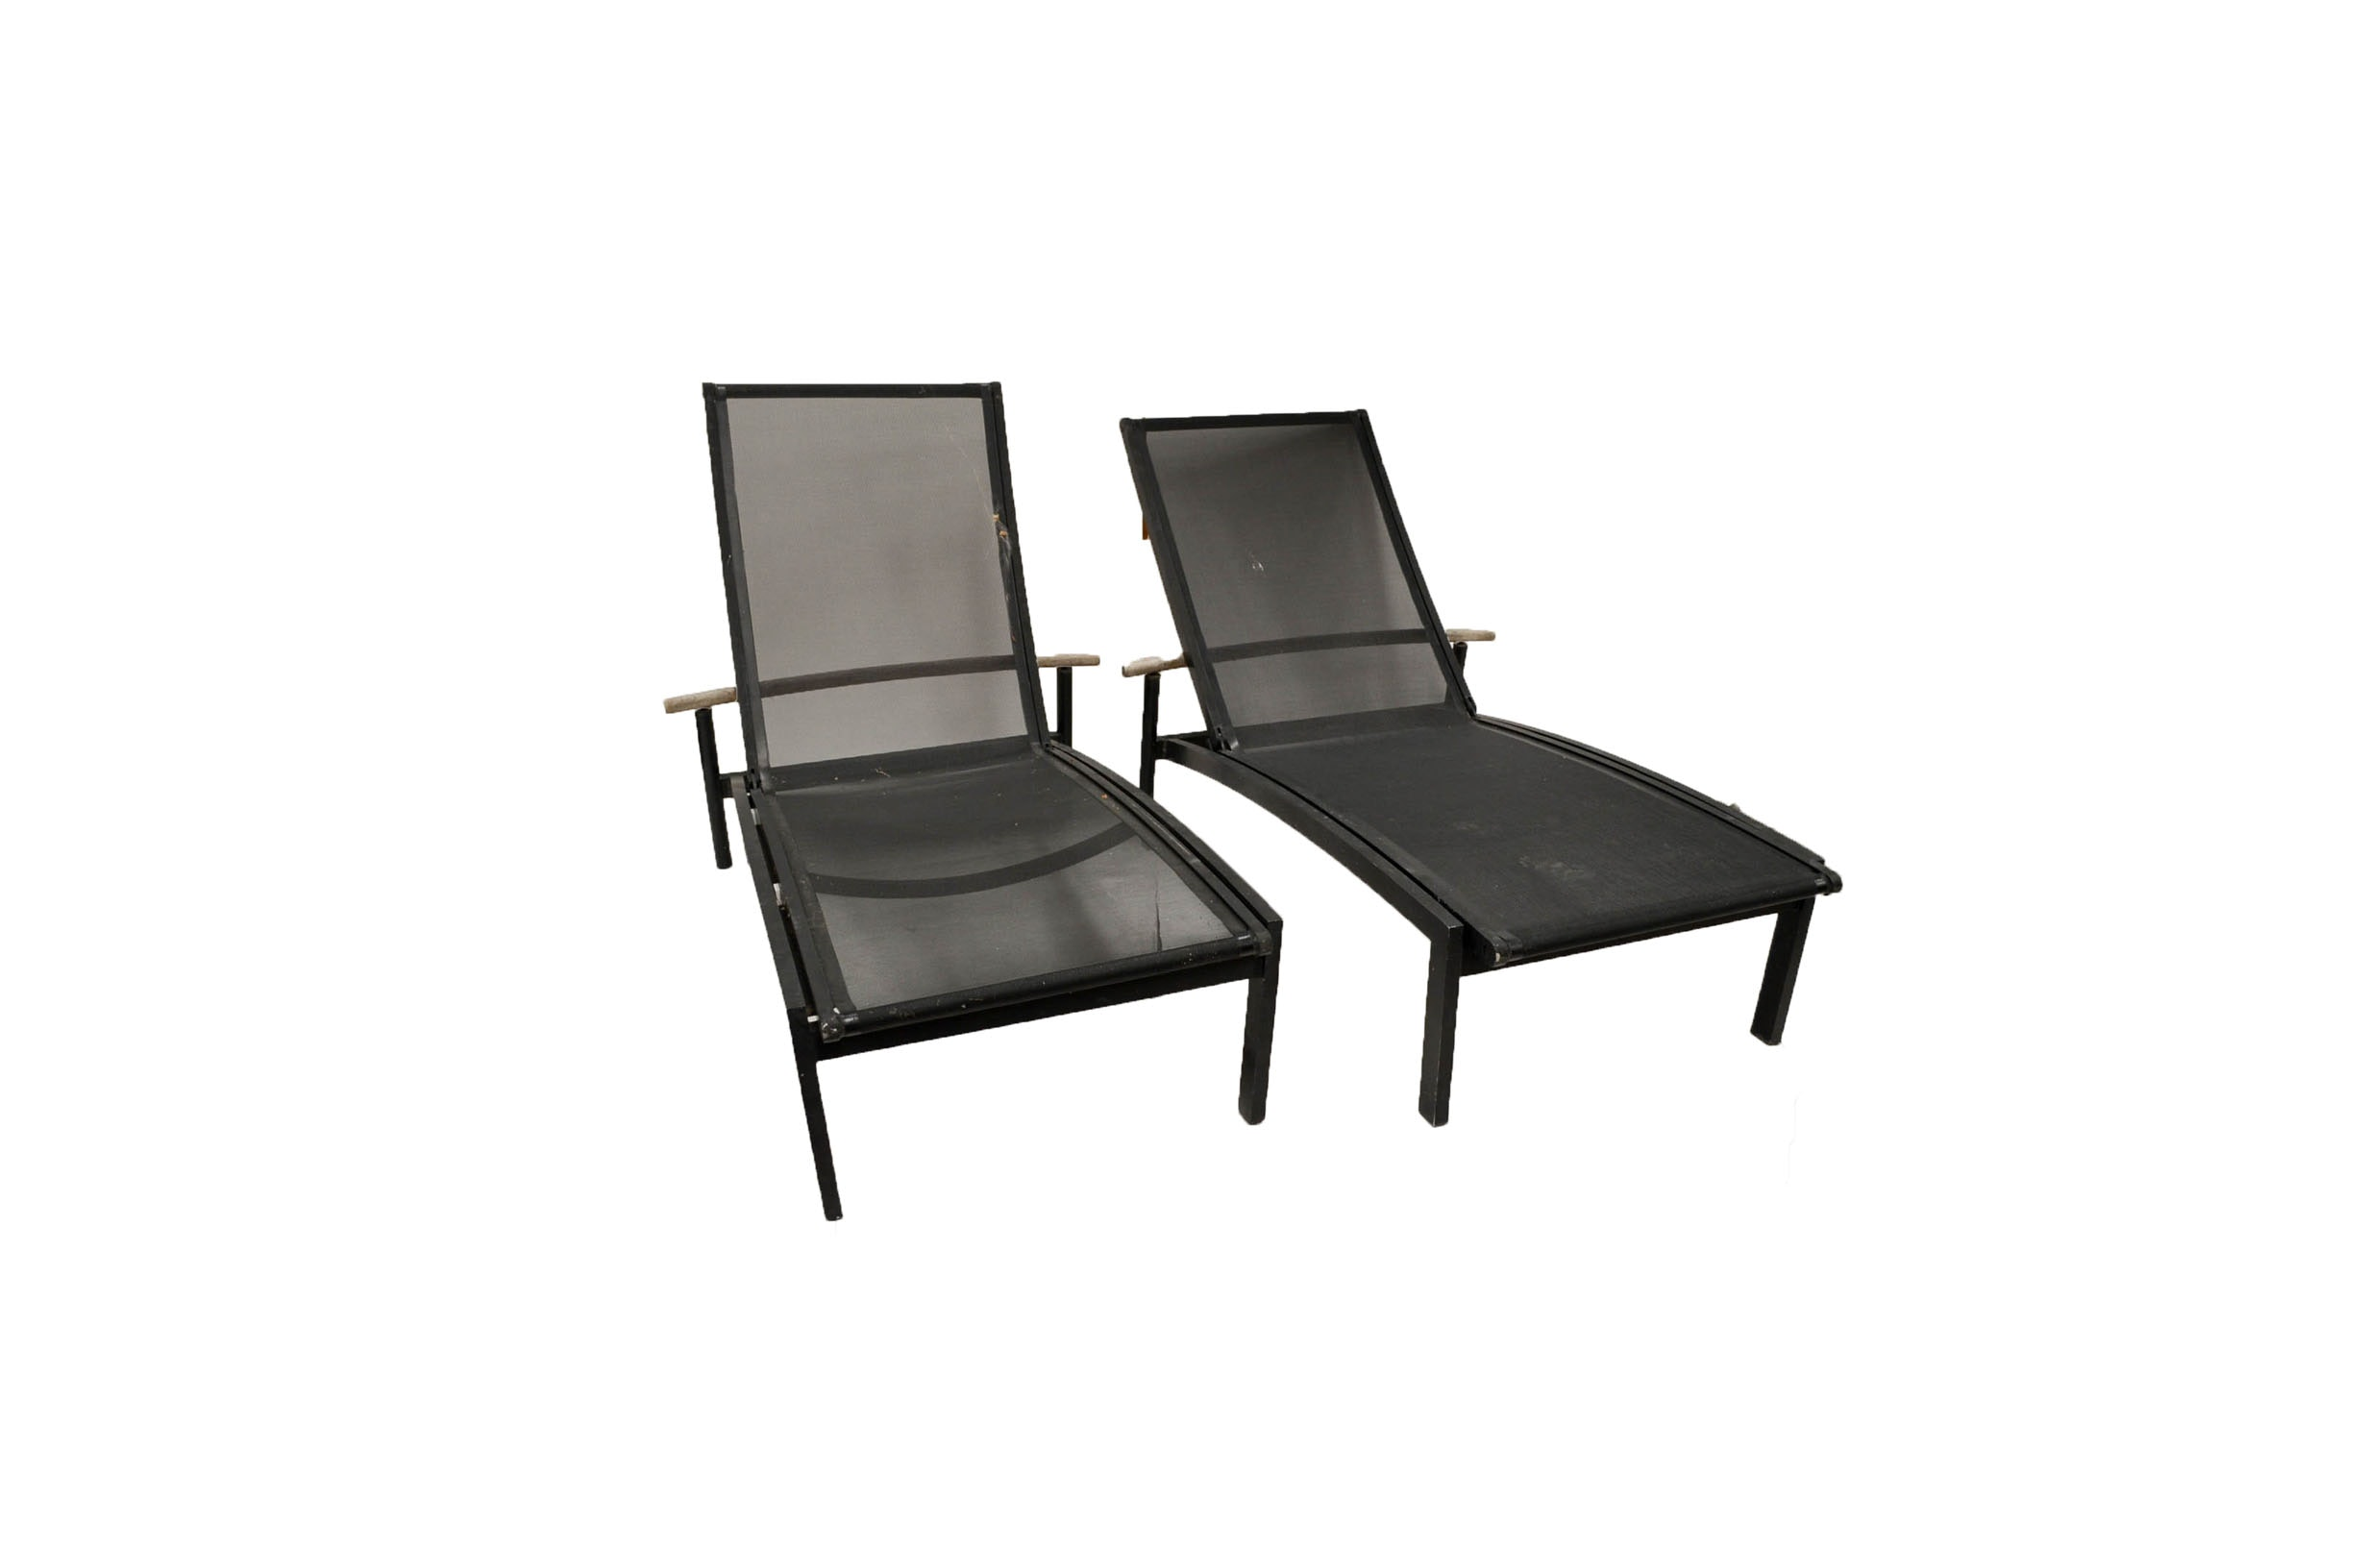 Pair of Black Steel Outdoor Chaise Lounge Chairs